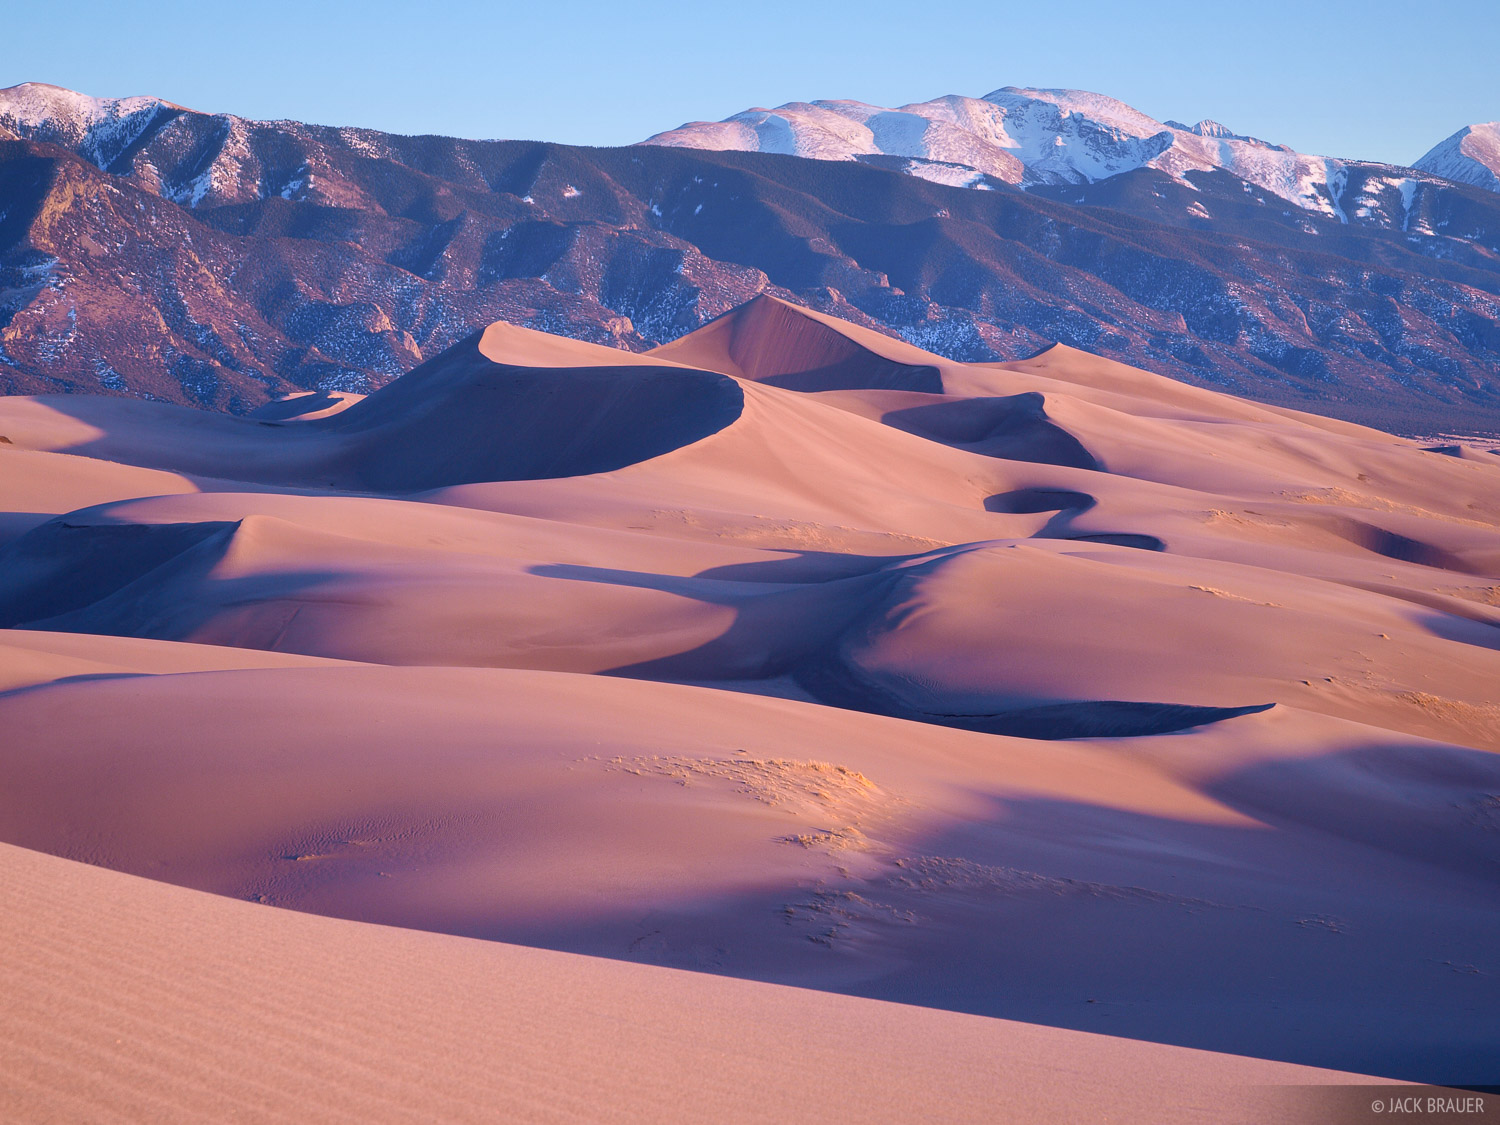 Warm sunset light shines on Star Dune, the tallest dune in the national park. Star Dune rises 750 feet above the San Luis...